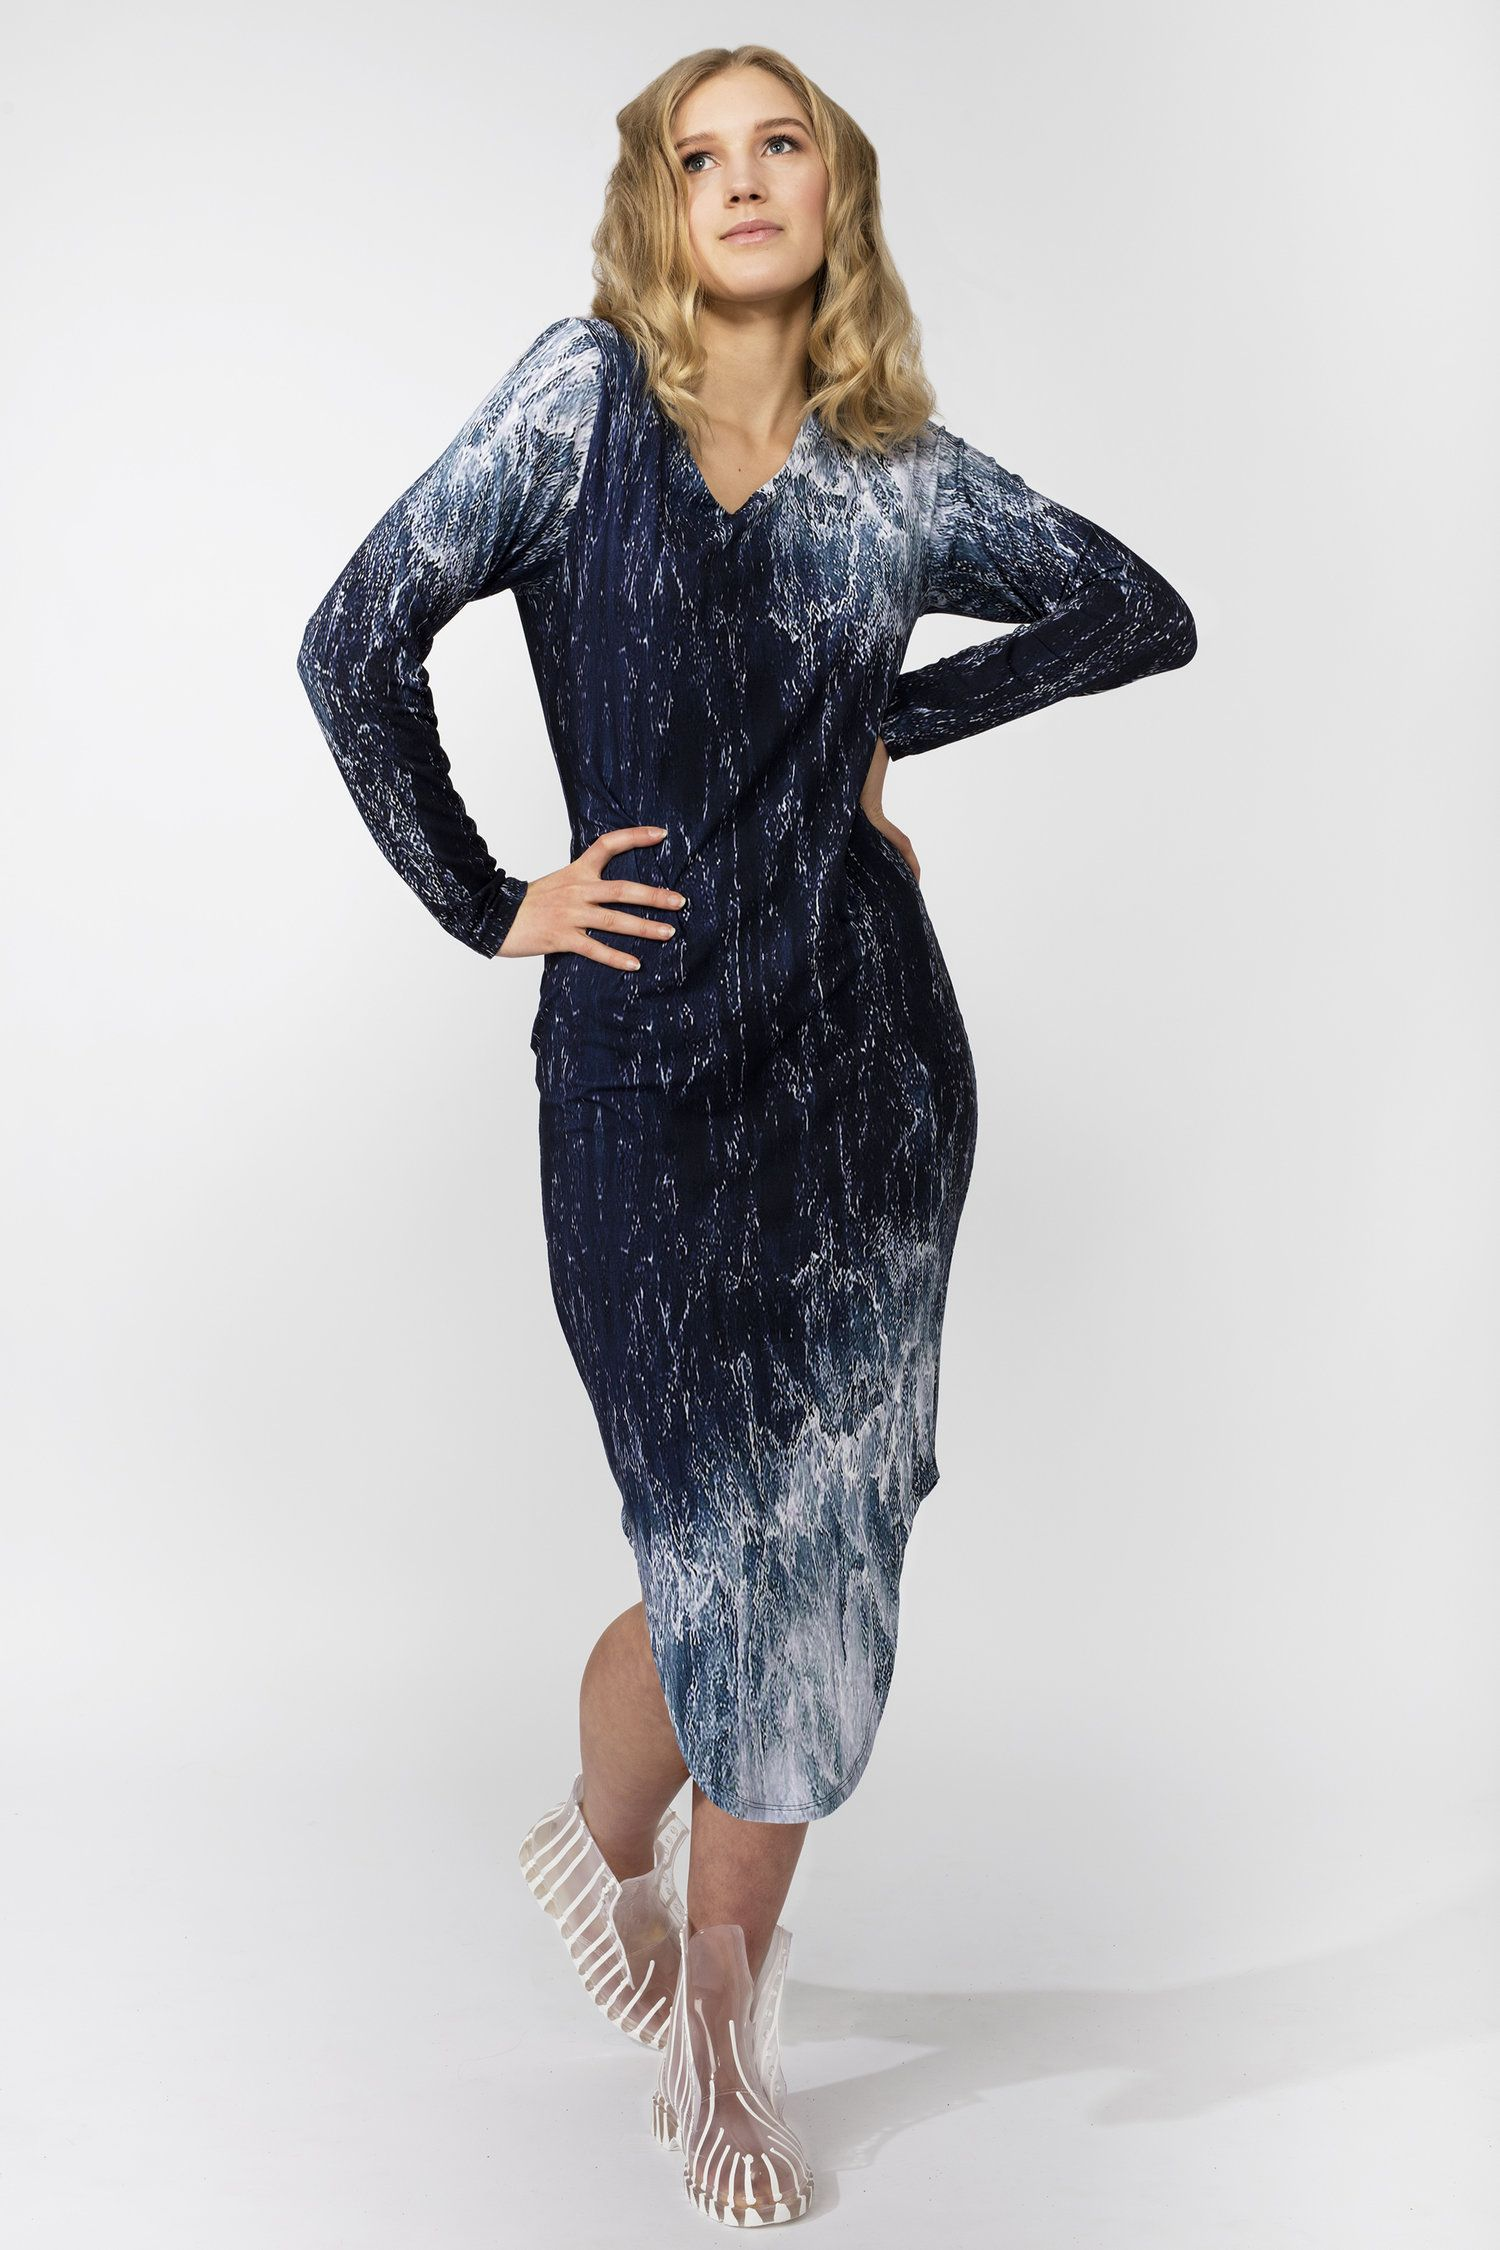 af6126fc70c Camilla Dress Sea Print from The Kepaza  Under The Umbrella  Collection by  Award Winning Norwegian Fashion Designer Pernille Fristad